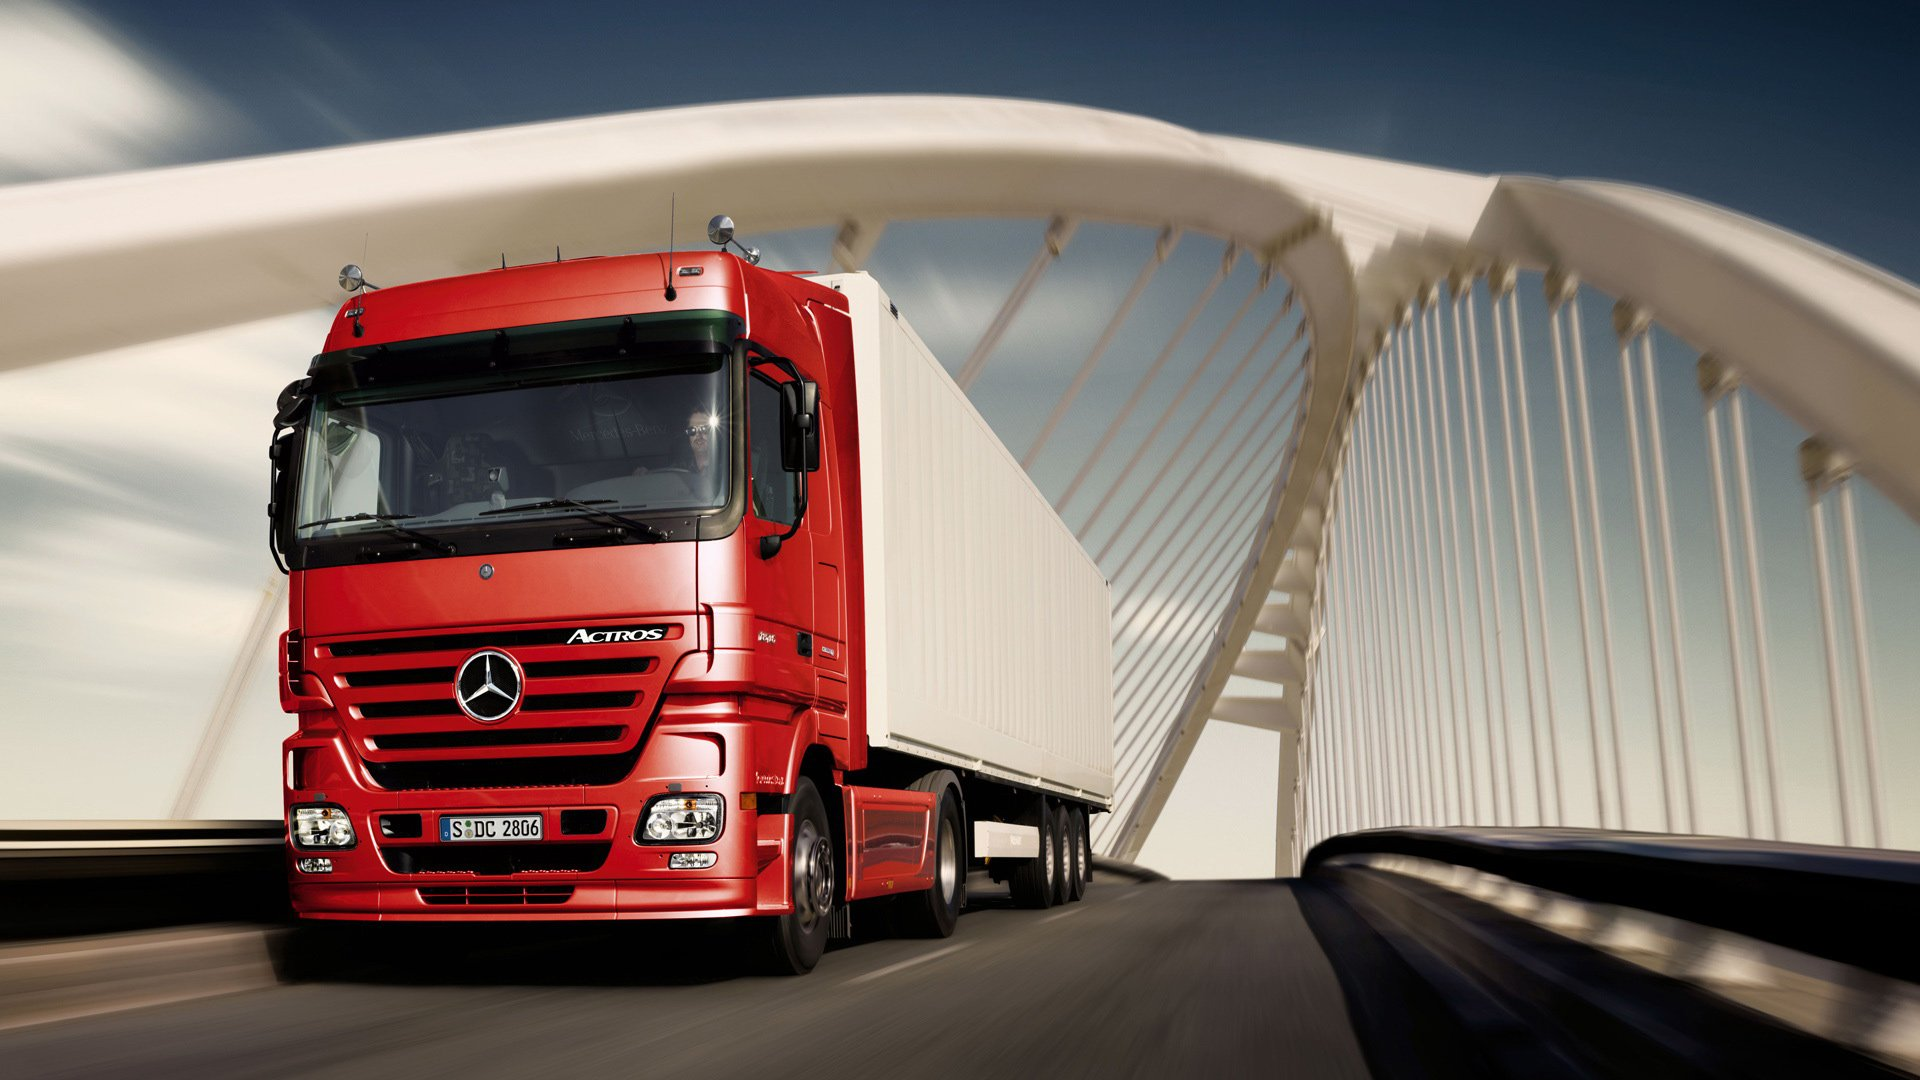 4K Truck Wallpapers High Quality   Download Free